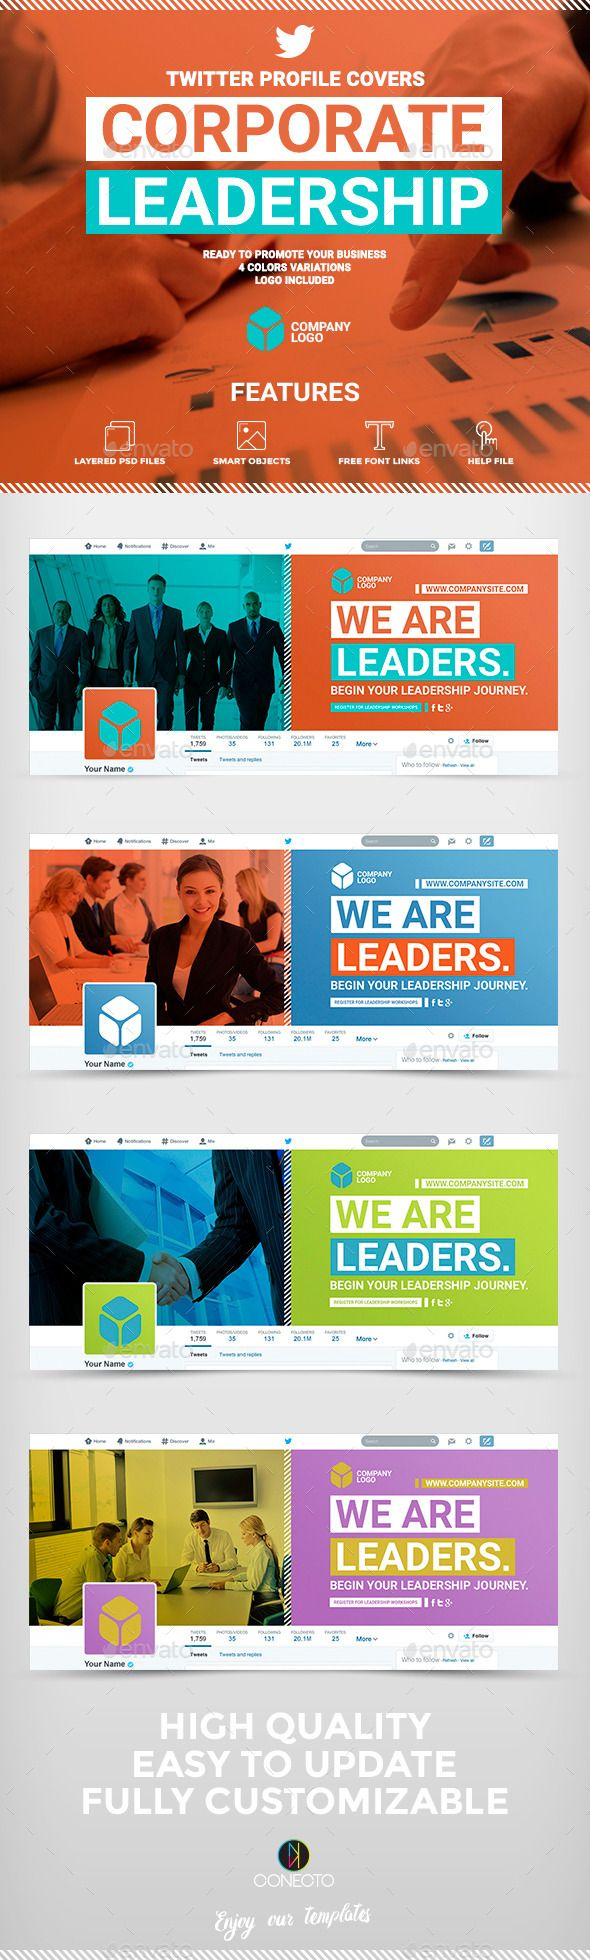 Twitter Profile Covers - Corporate Leadership